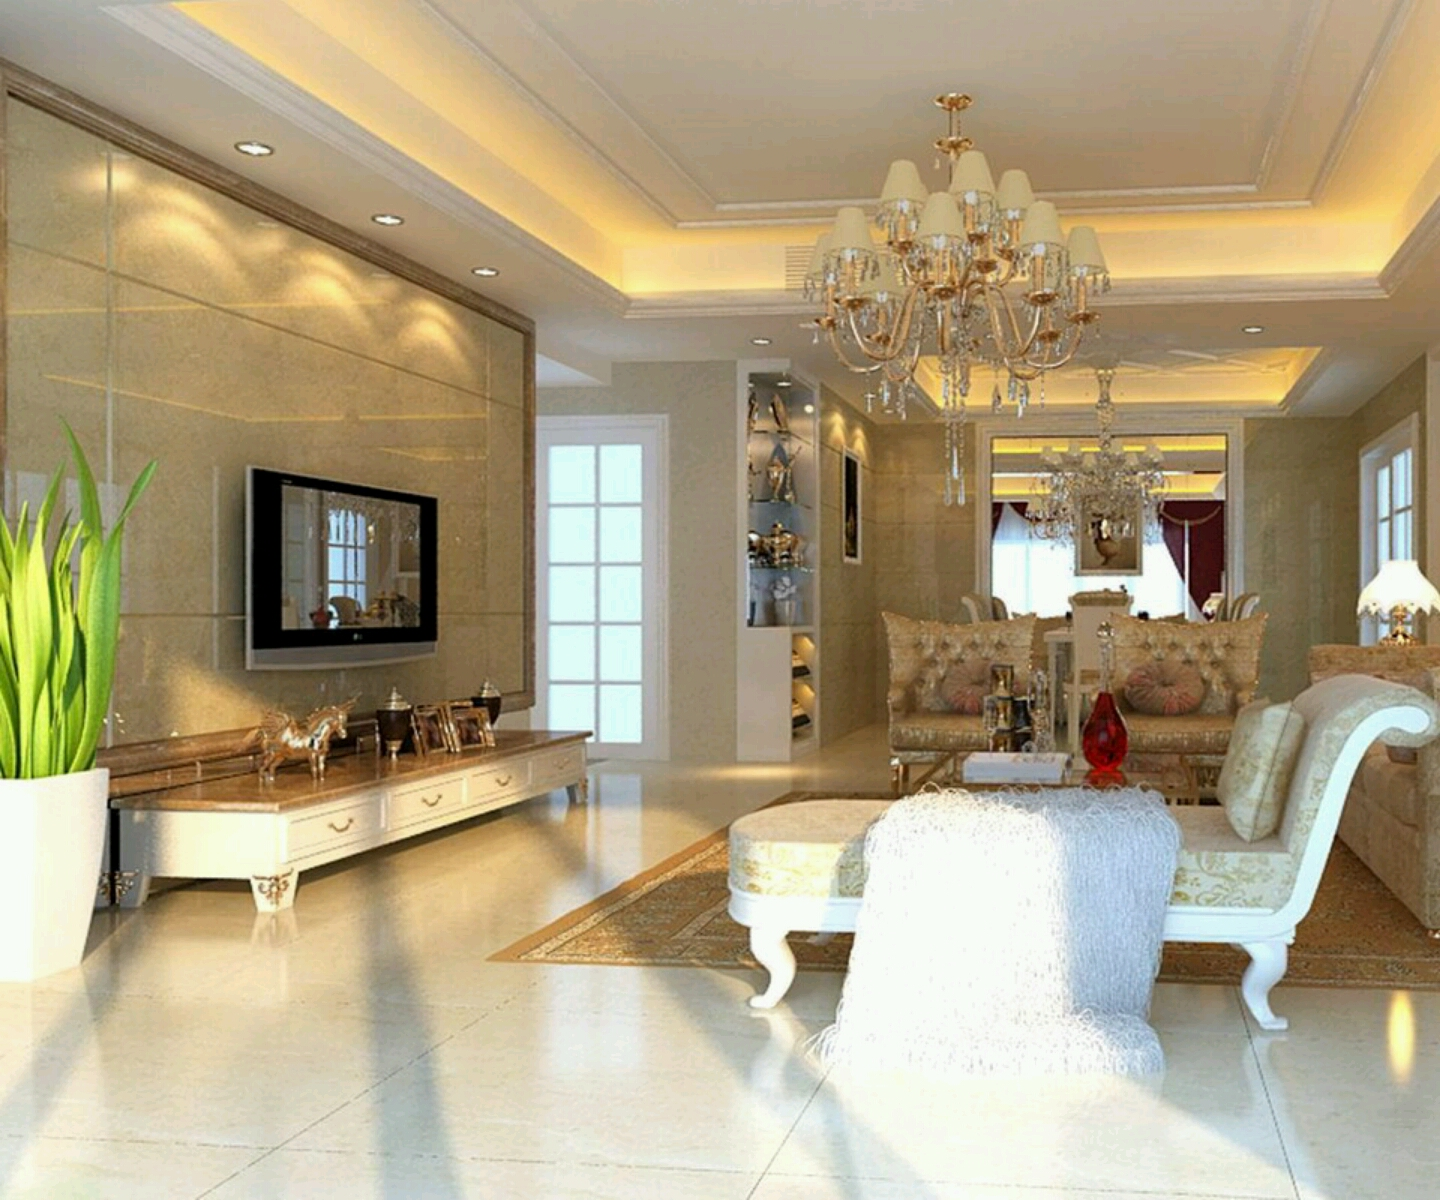 Interior Design Home Decorating Ideas: Home Decor 2012: Luxury Homes Interior Decoration Living